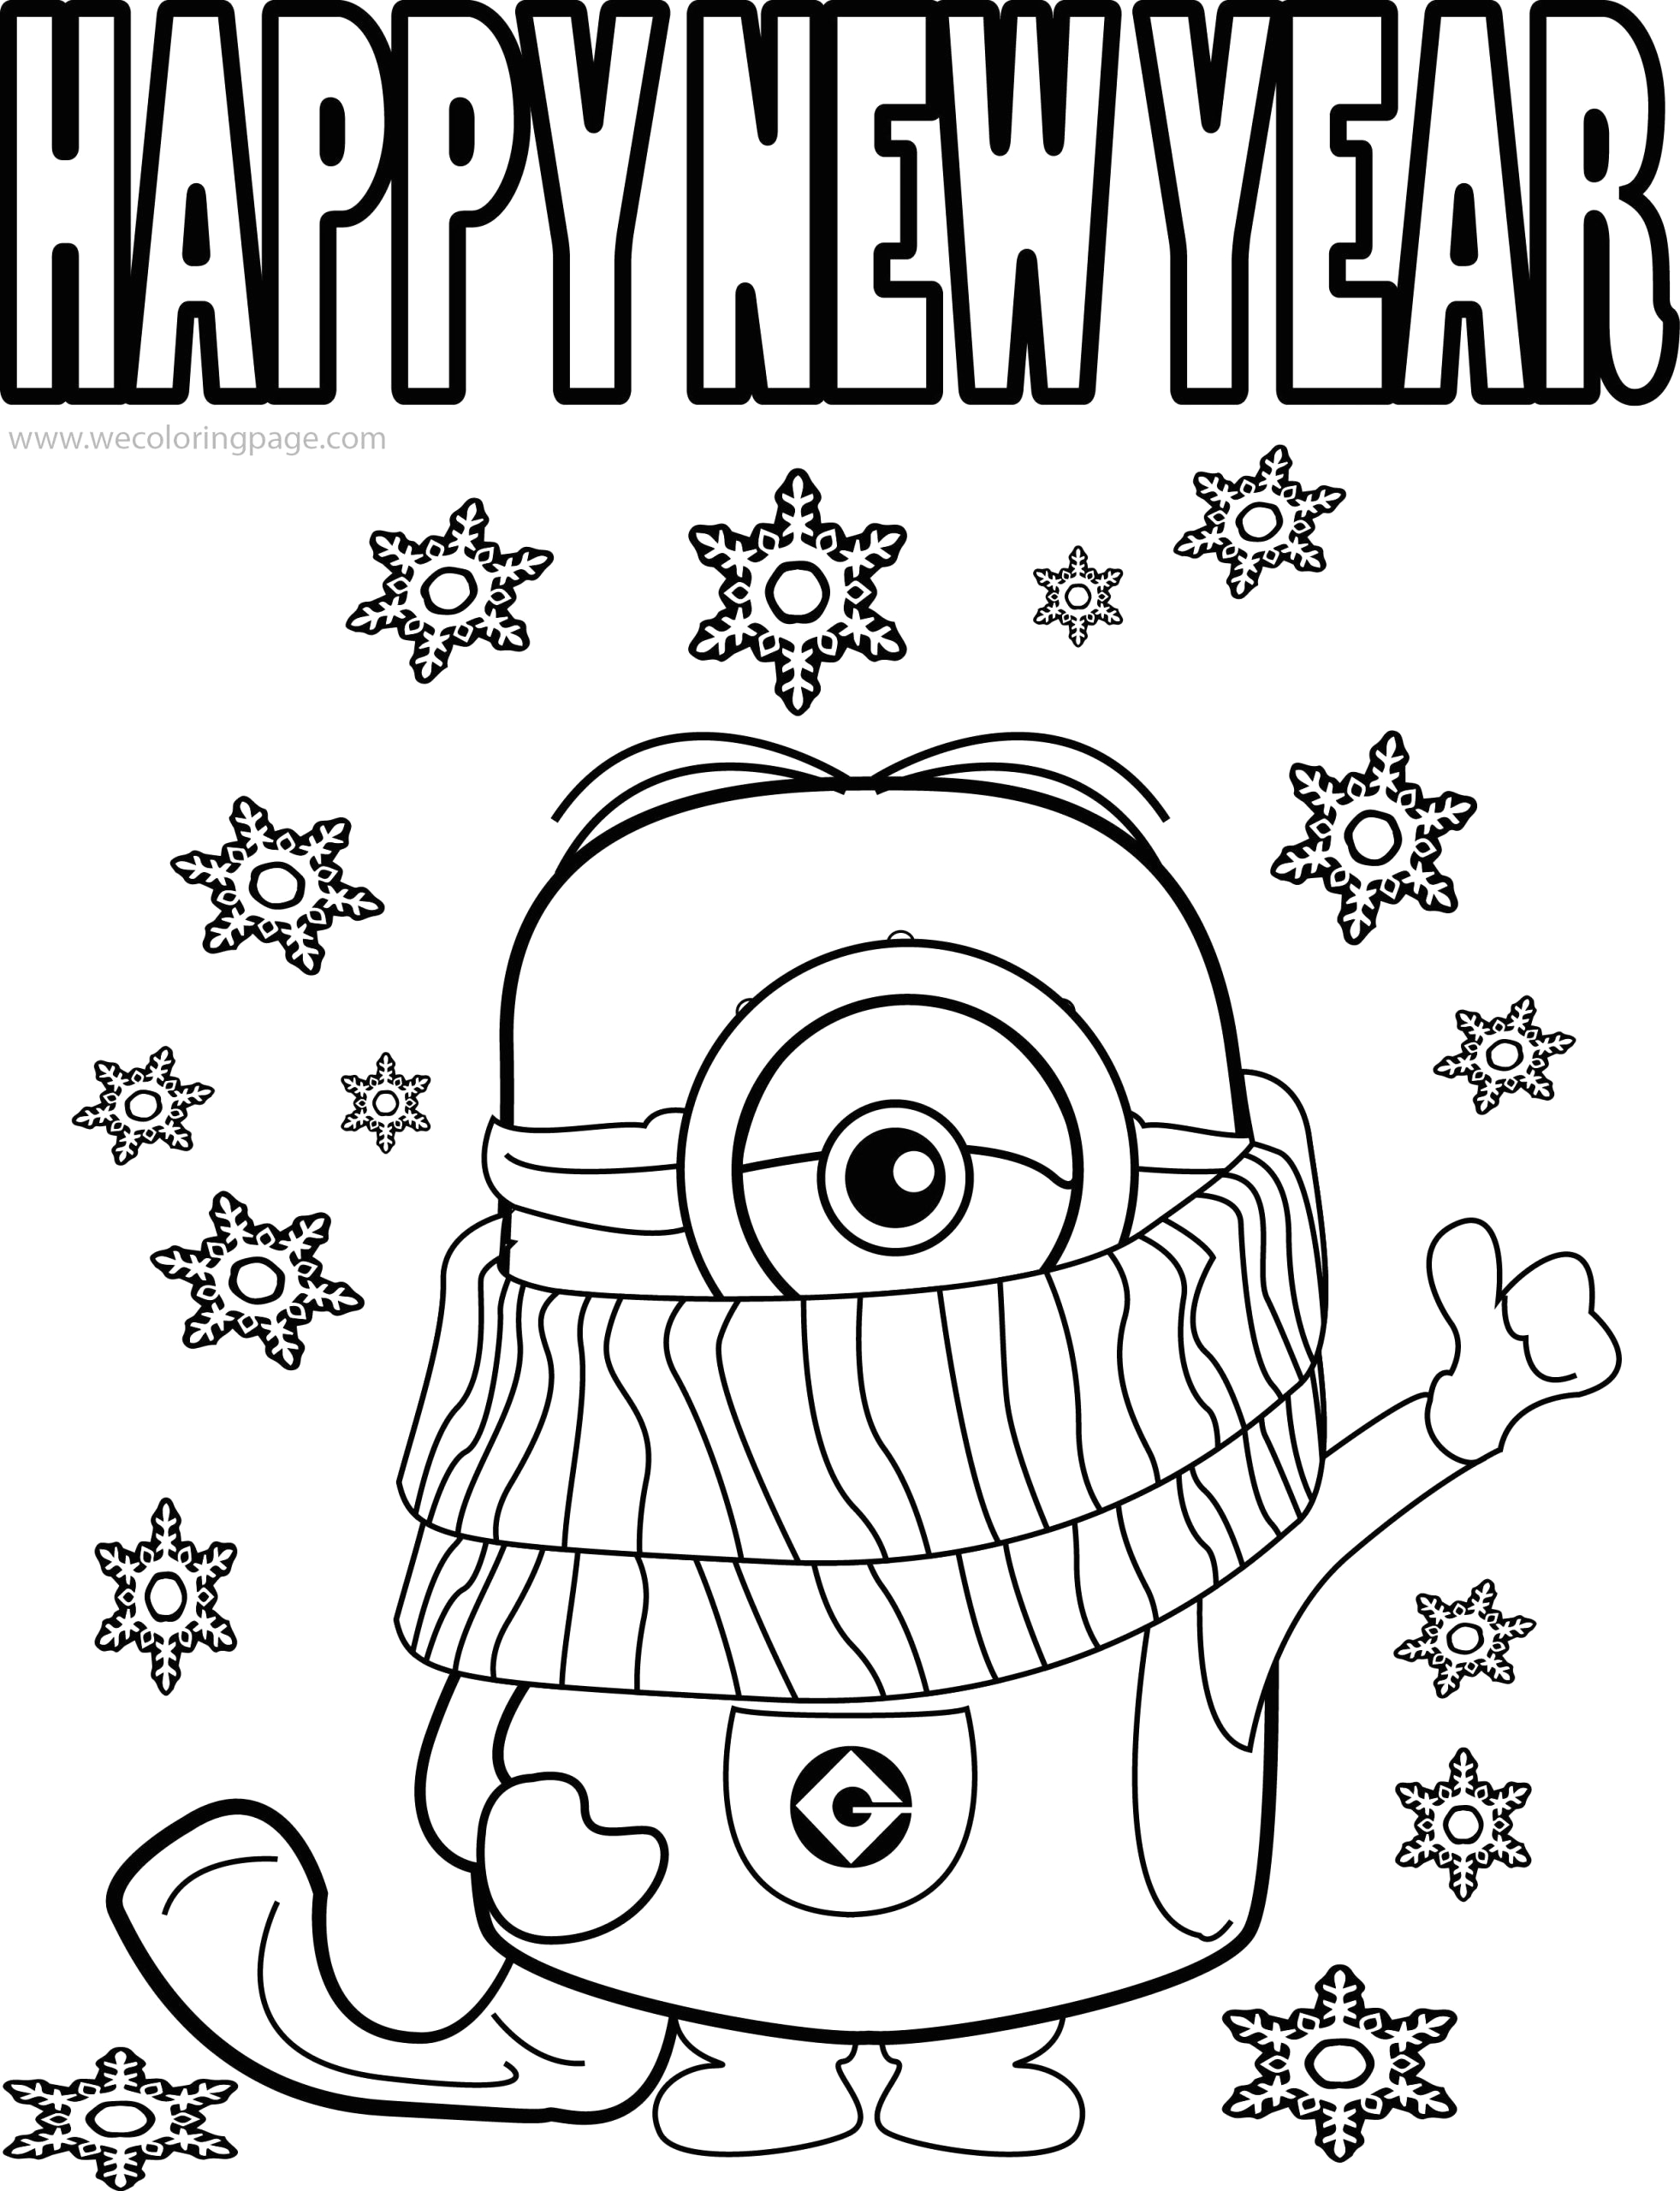 Happy New Year Coloring Pages for Kids Happy New Year 2020 Coloring Pages Coloring Home